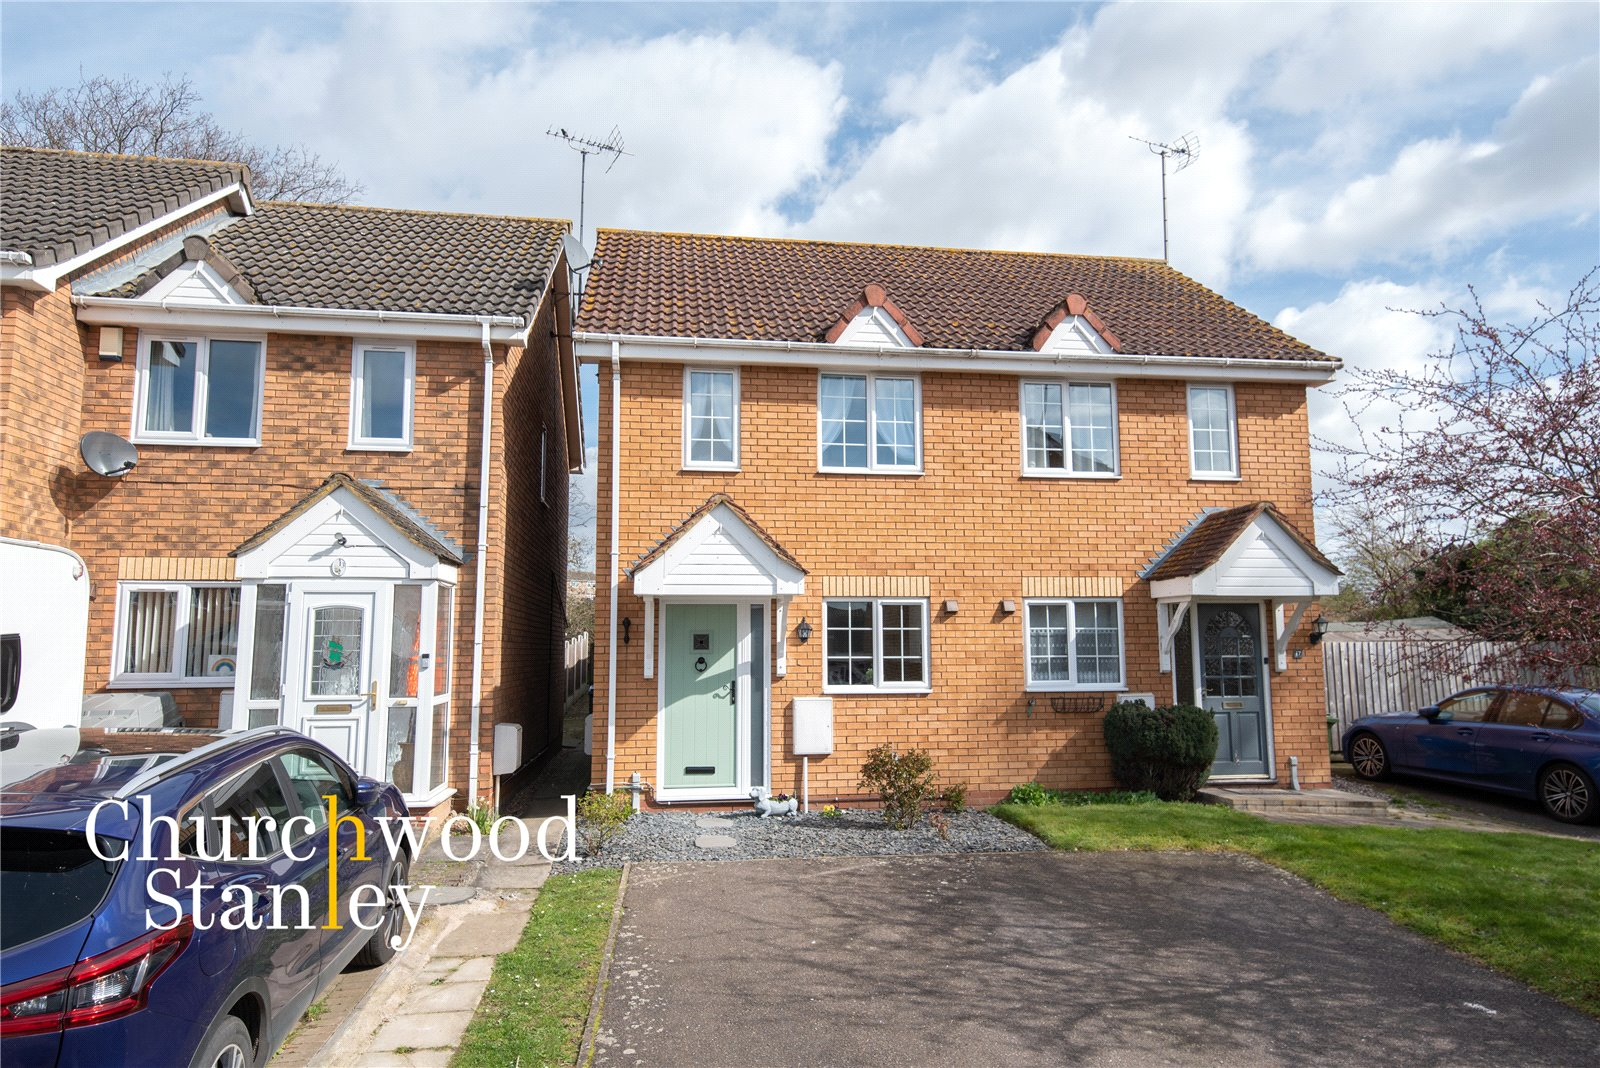 2 bed semi-detached house for sale in Grimwade Close, Brantham, Manningtree, CO11